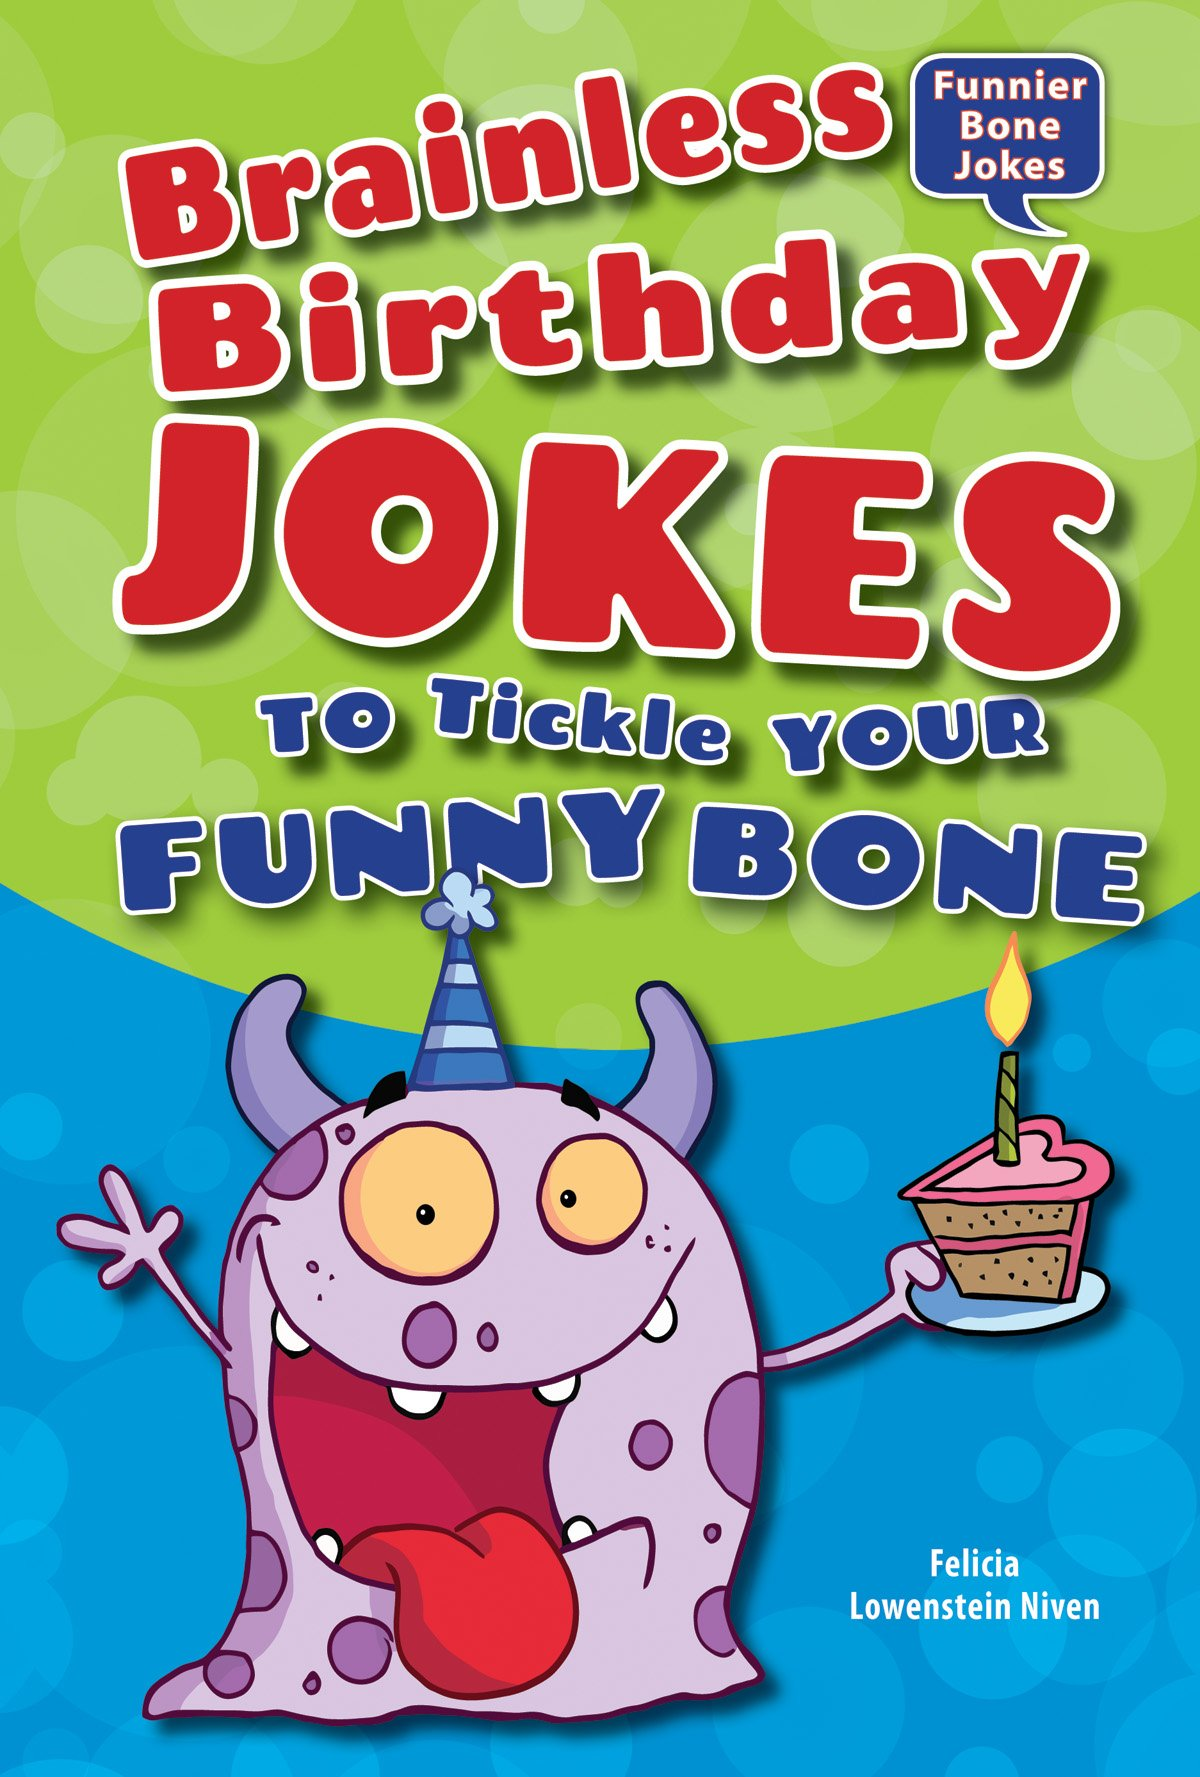 brainless-birthday-jokes-to-tickle-your-funny-bone-funnier-bone-jokes